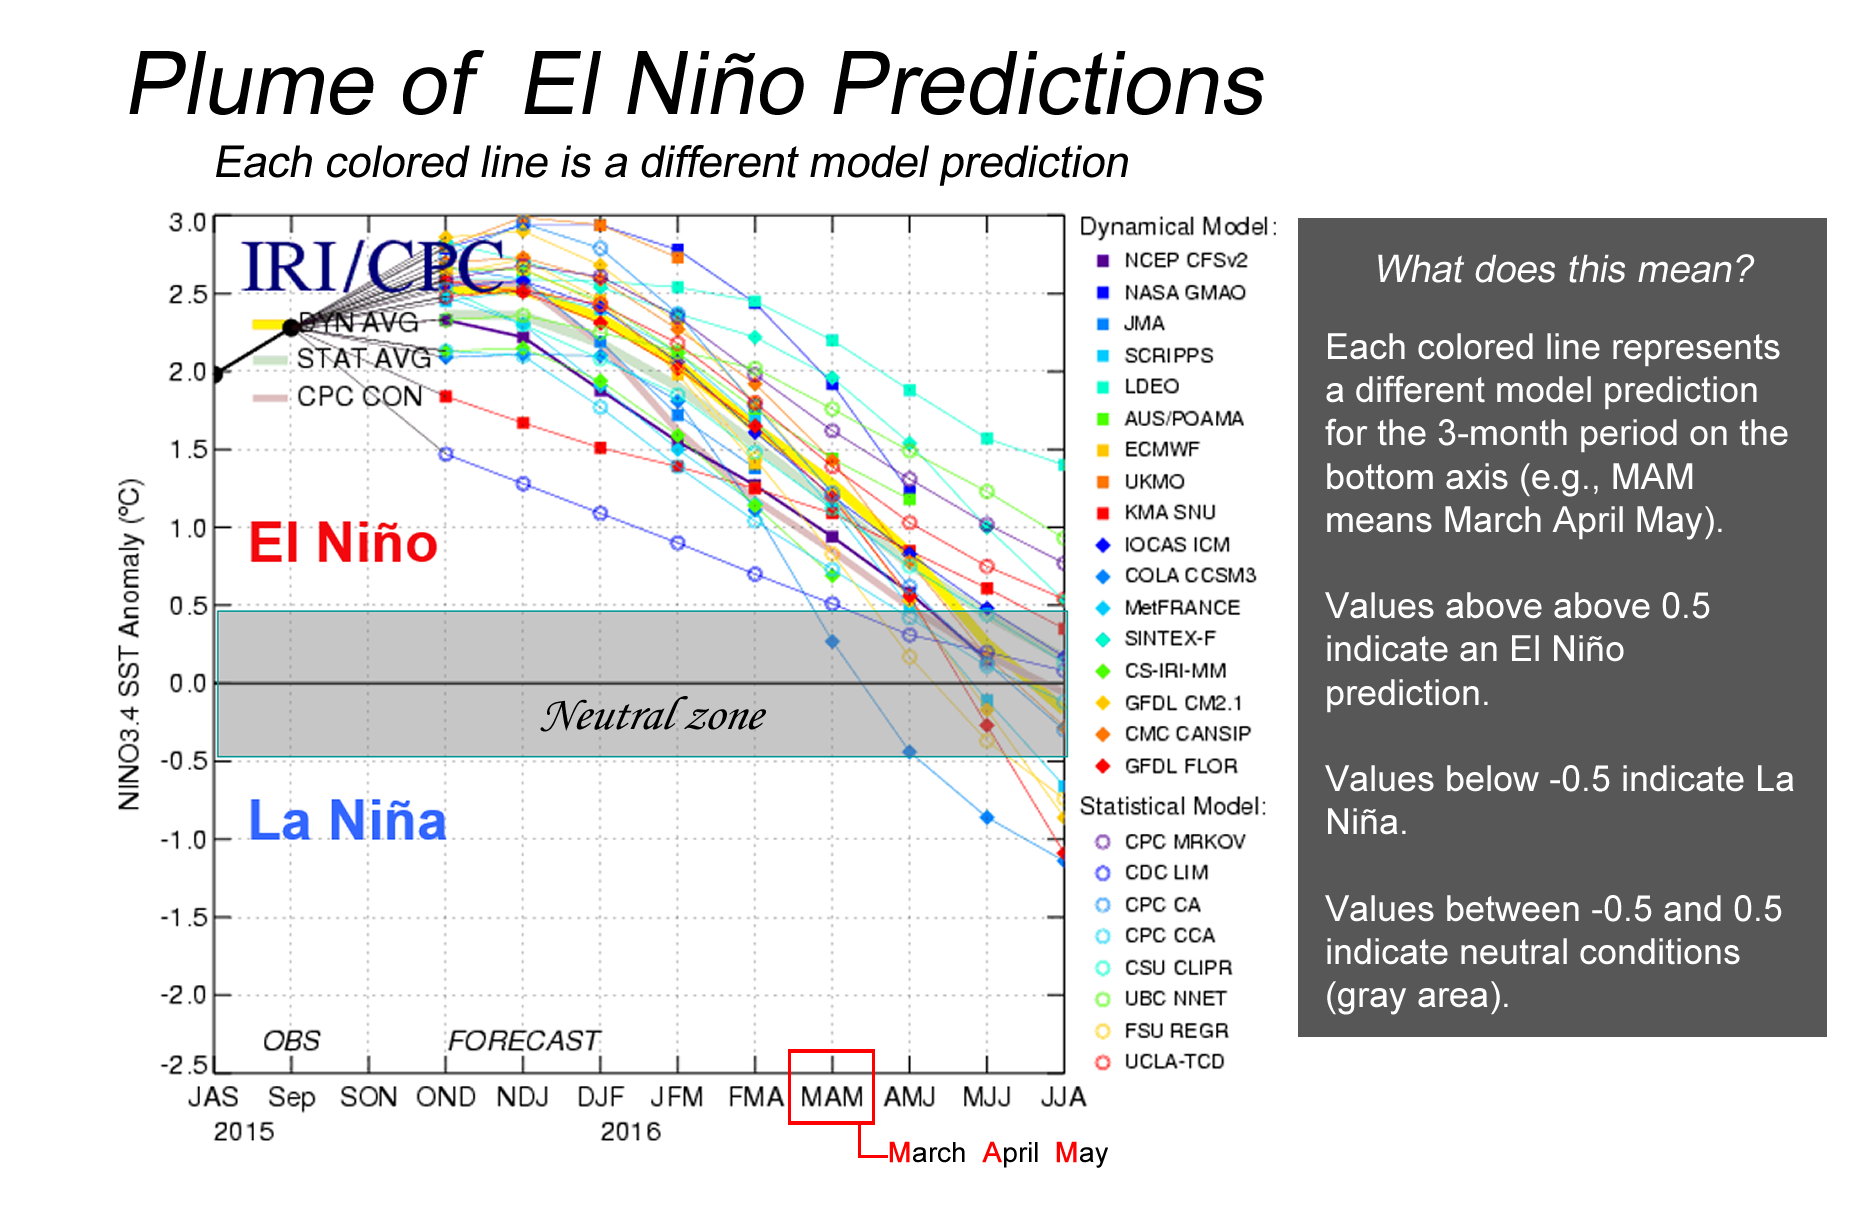 Explanation of plume of El Nino forecasts